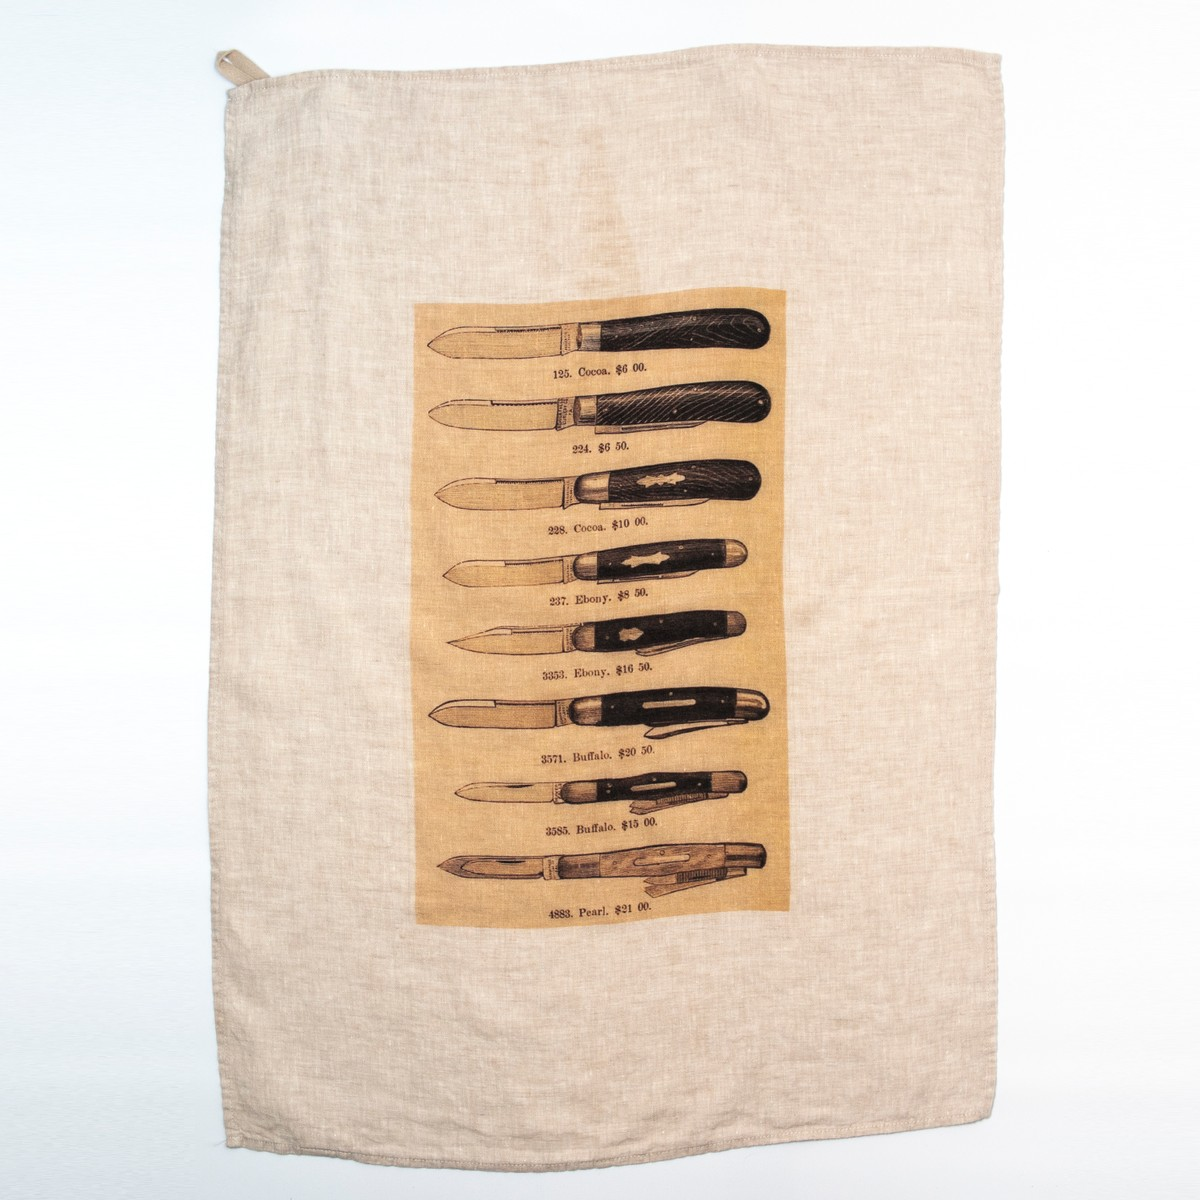 Photo of The Knives Tea Towel